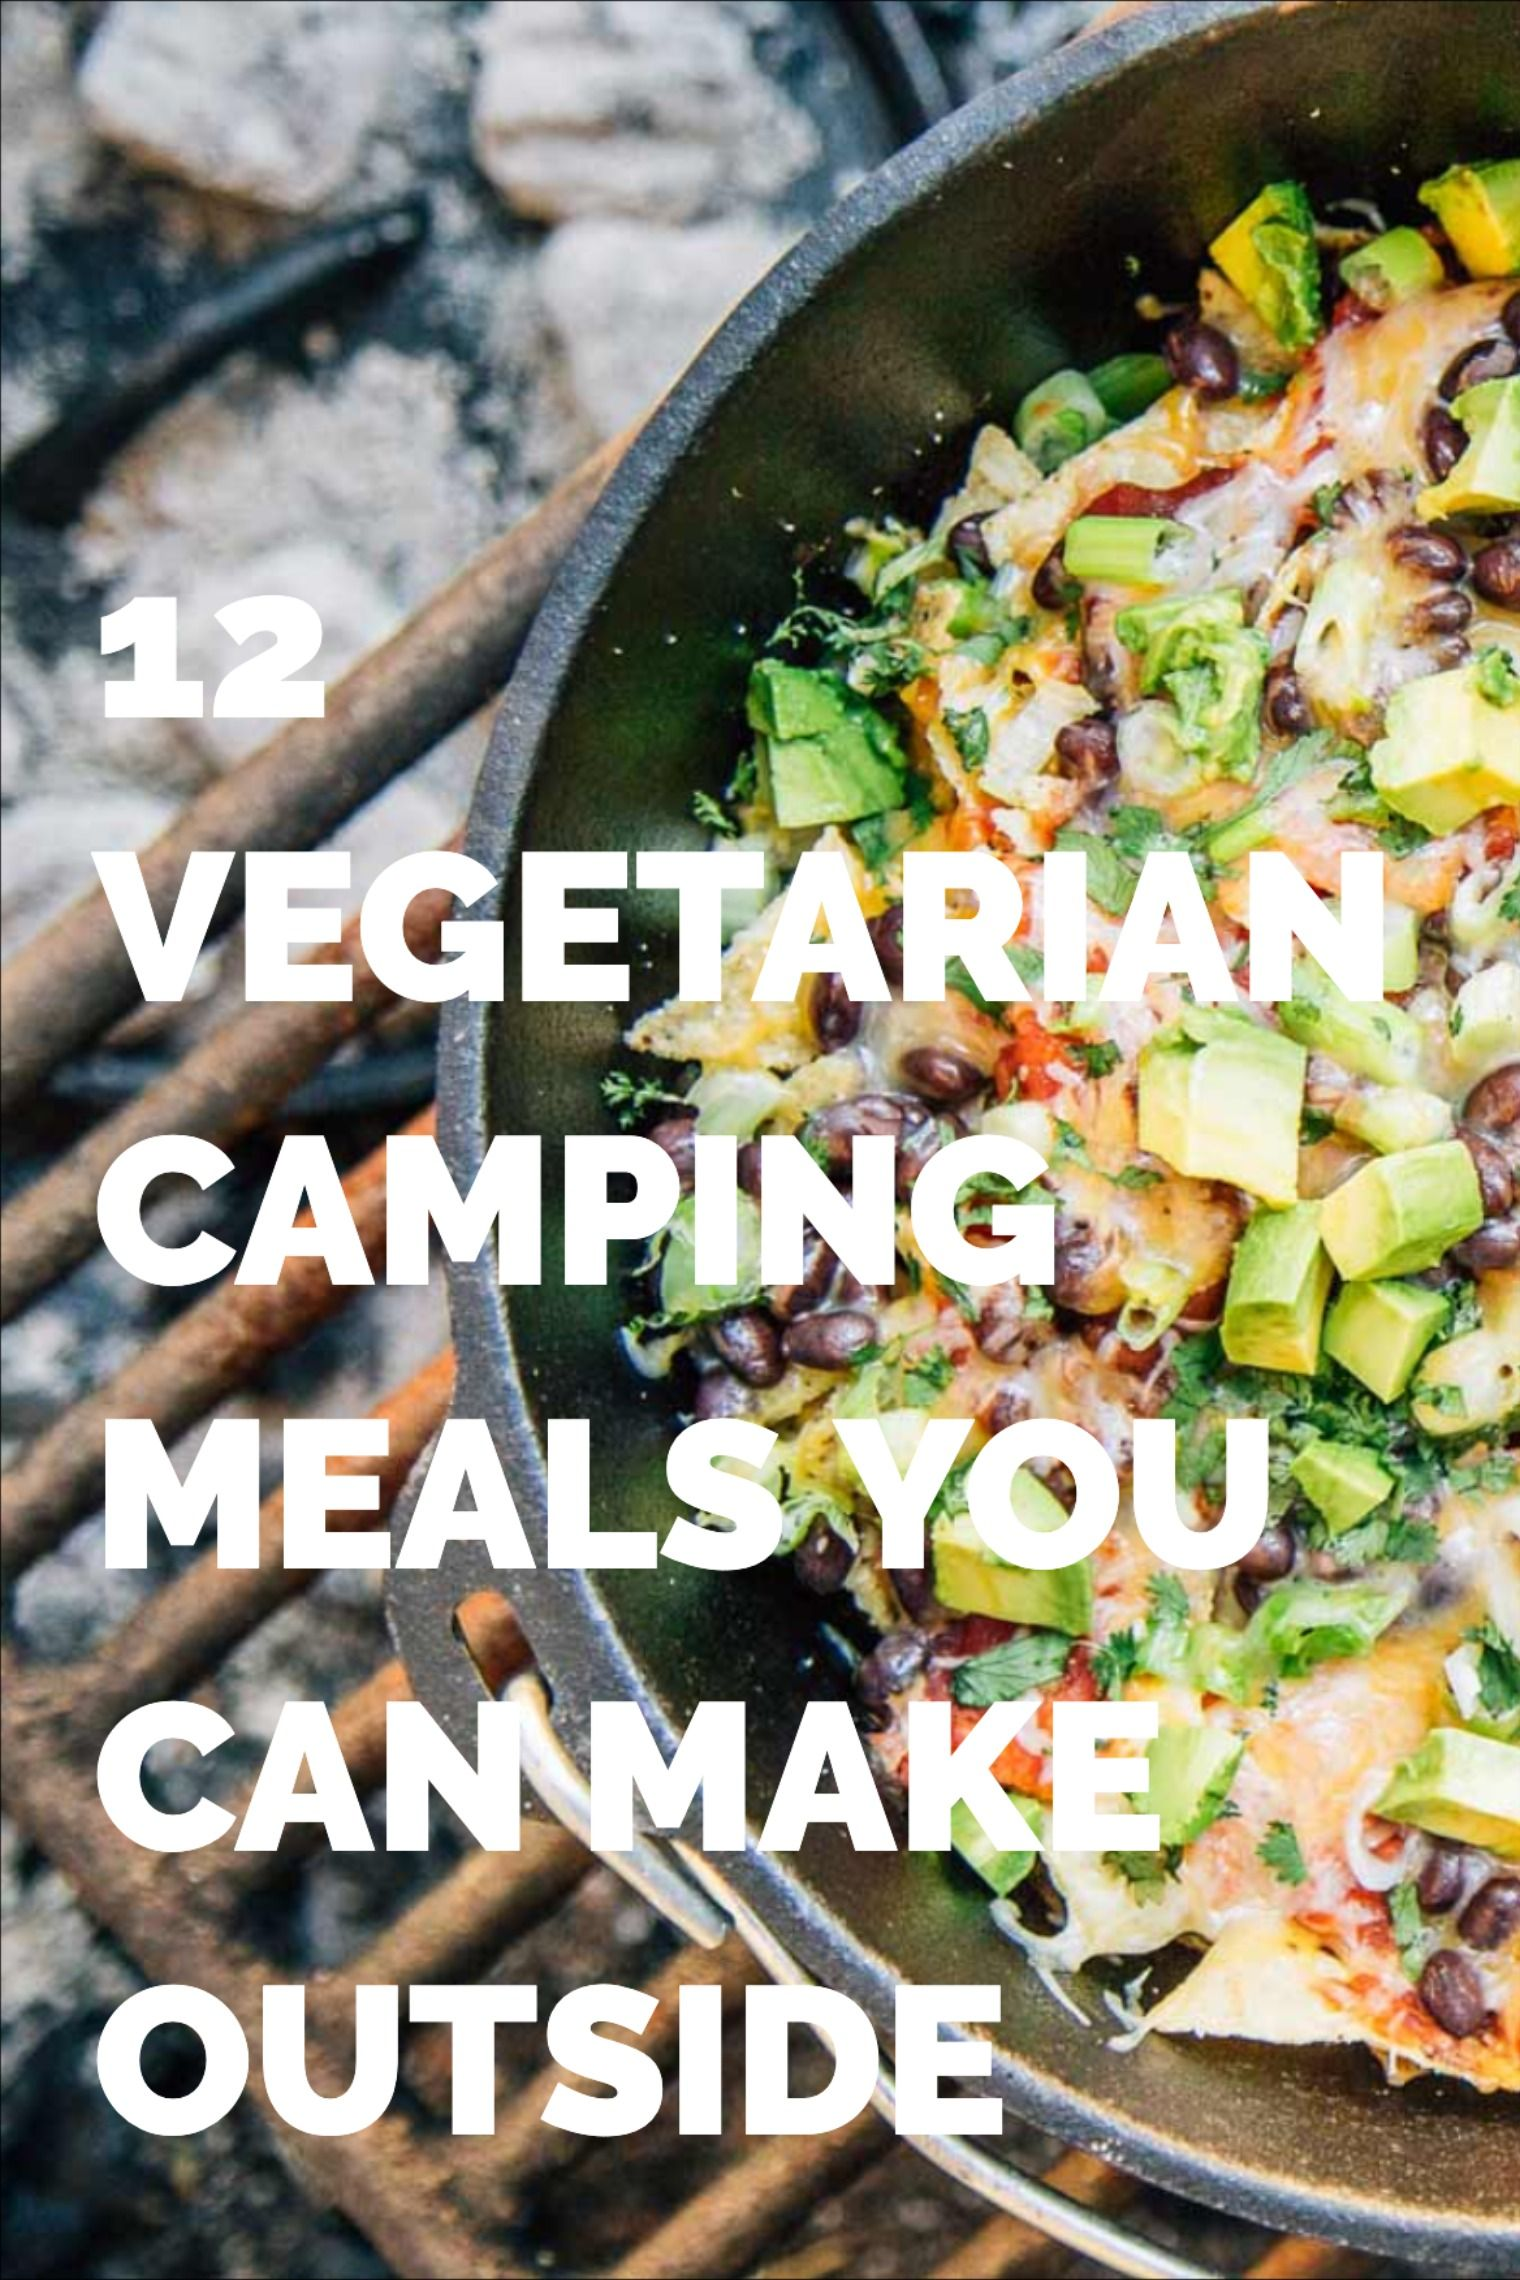 12 vegetarian camping meals you can make outside in 2020